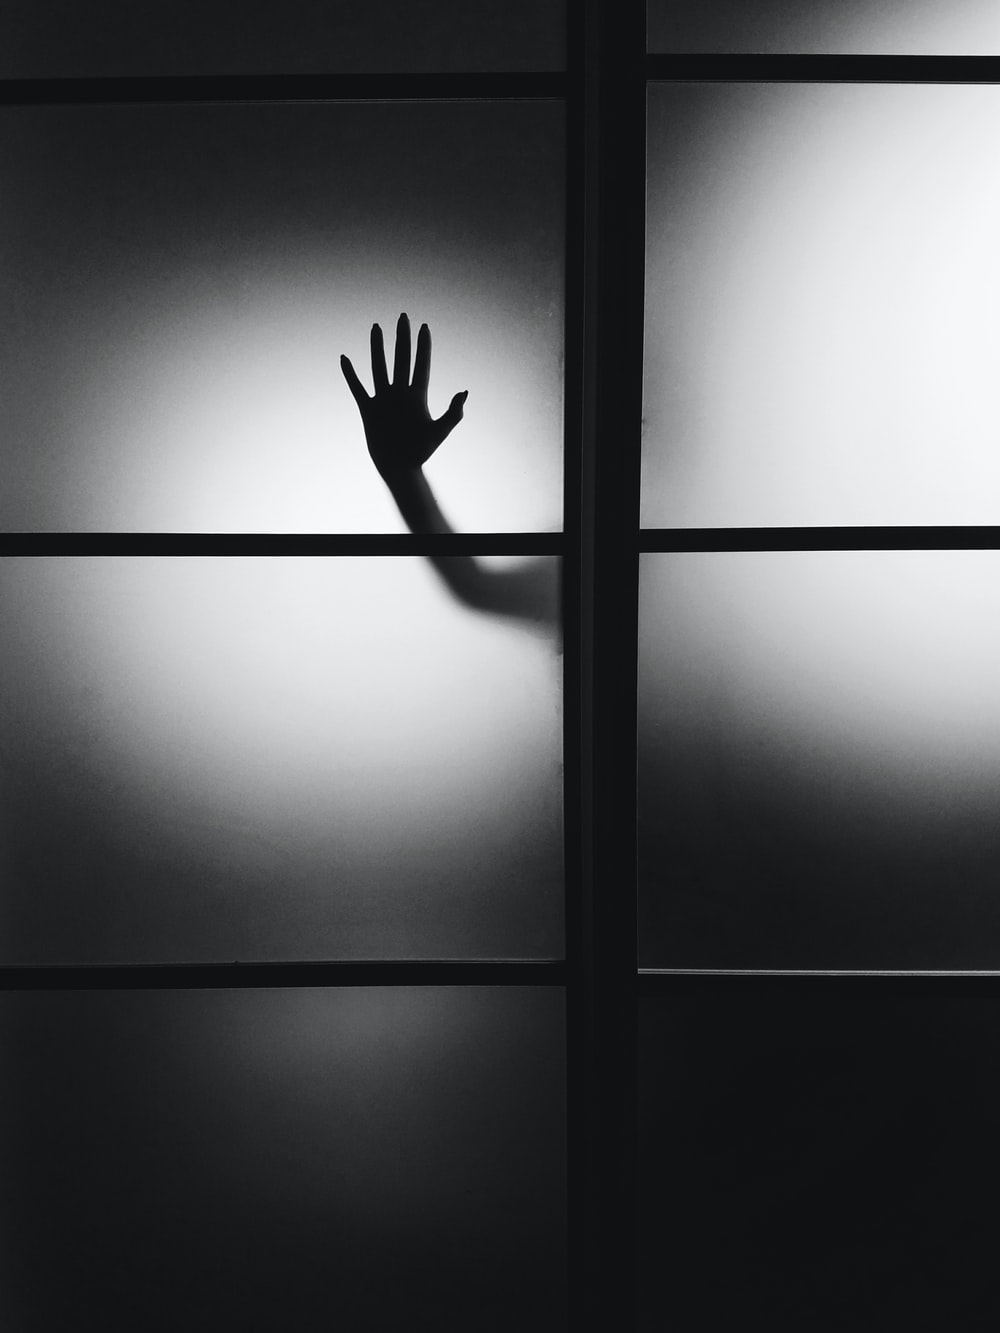 photo of person's hand on wall